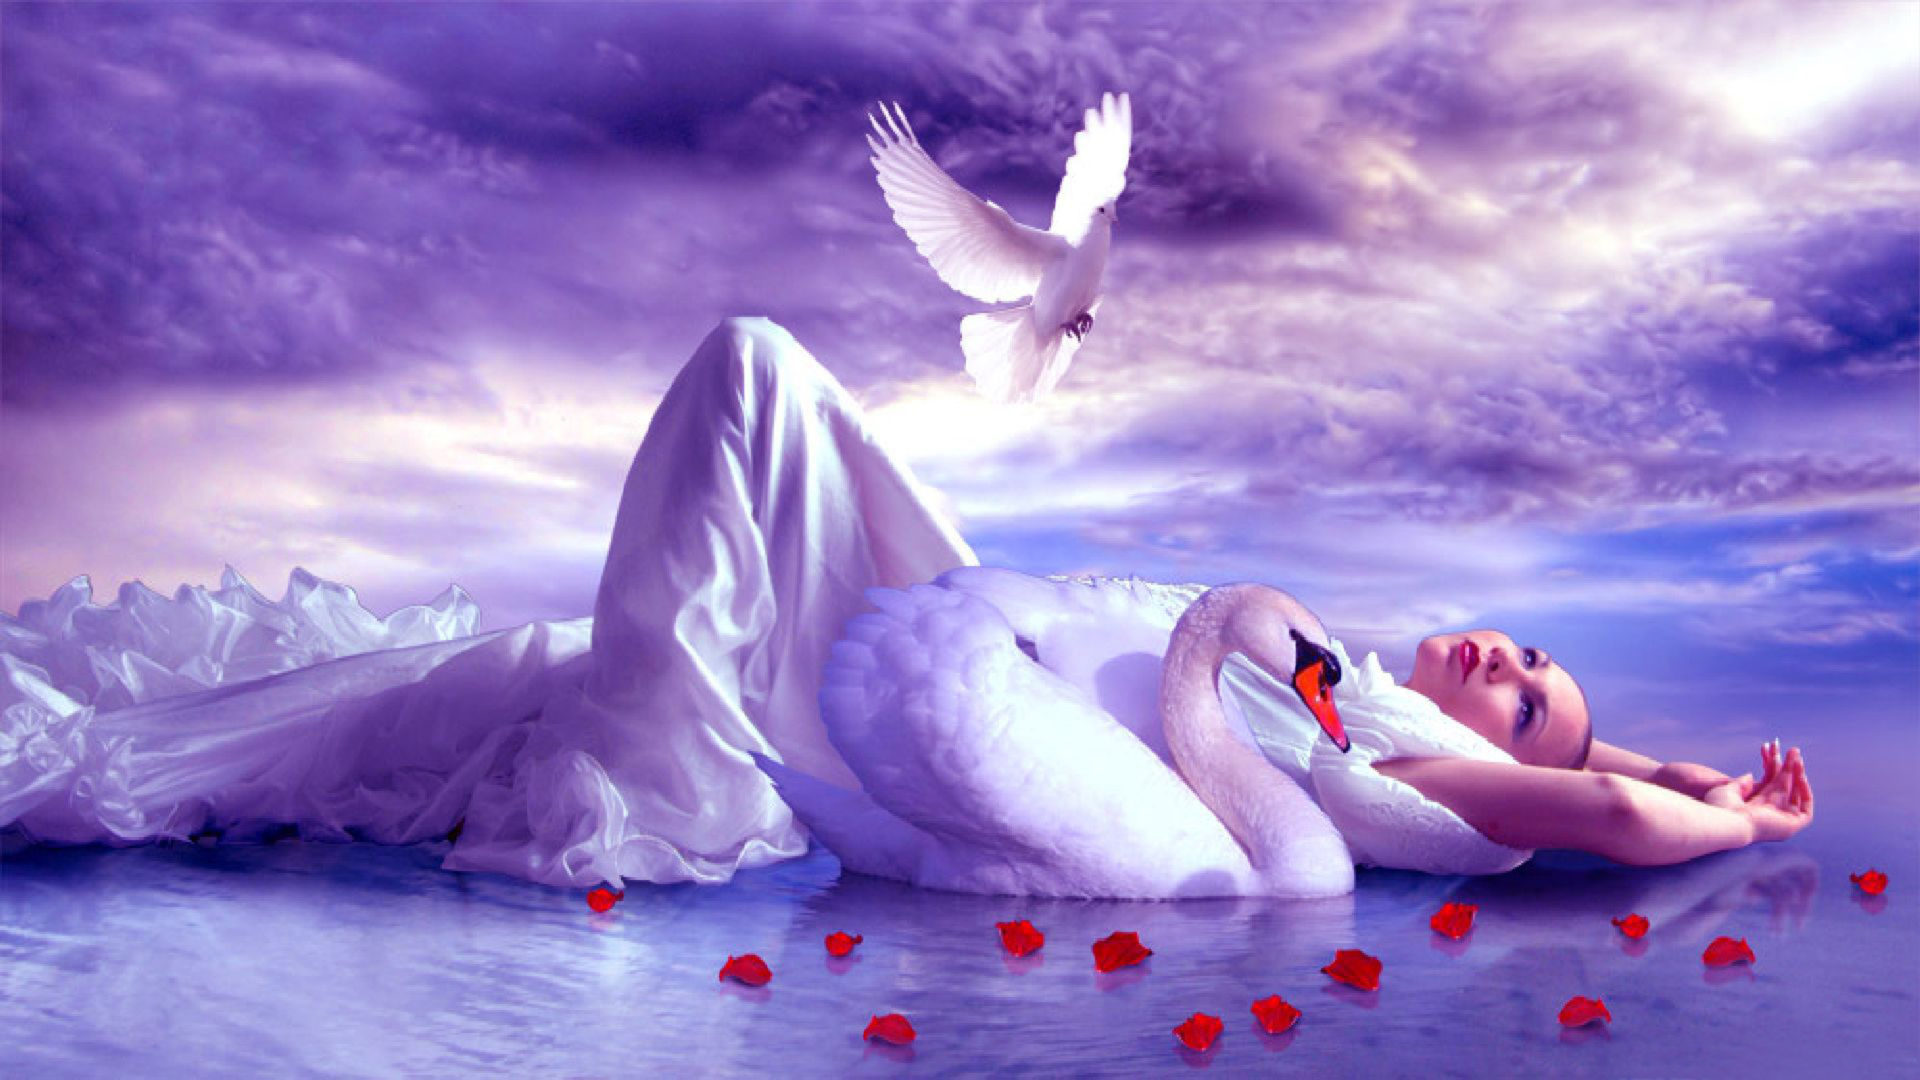 Rock Girl Wallpaper For Iphone Girl Lake Accompaniment Of A Swan And Golub Sky With White